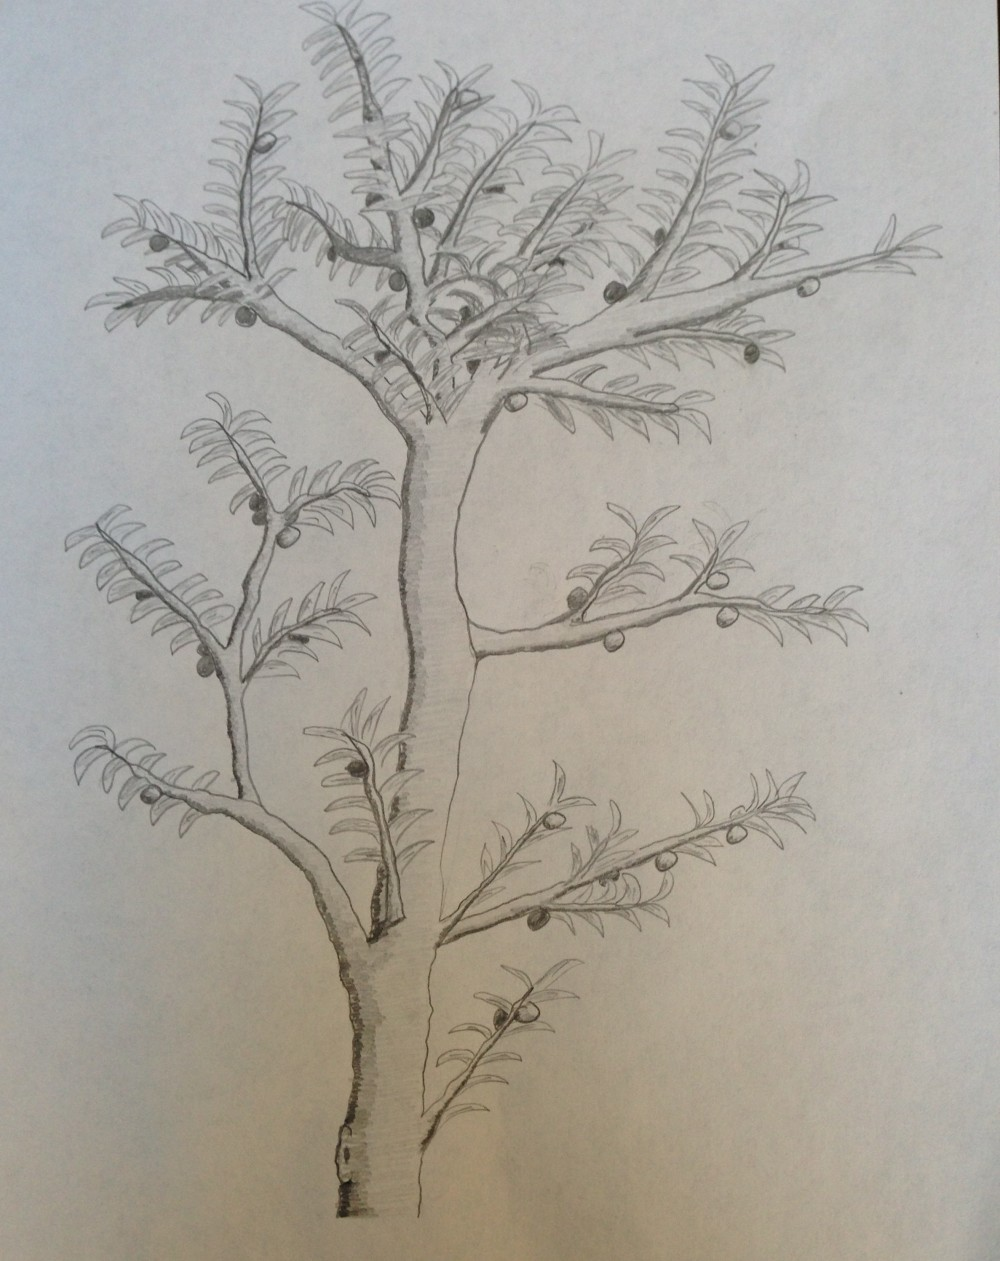 Drawing No. 11 – A Different Kind of Apple Tree